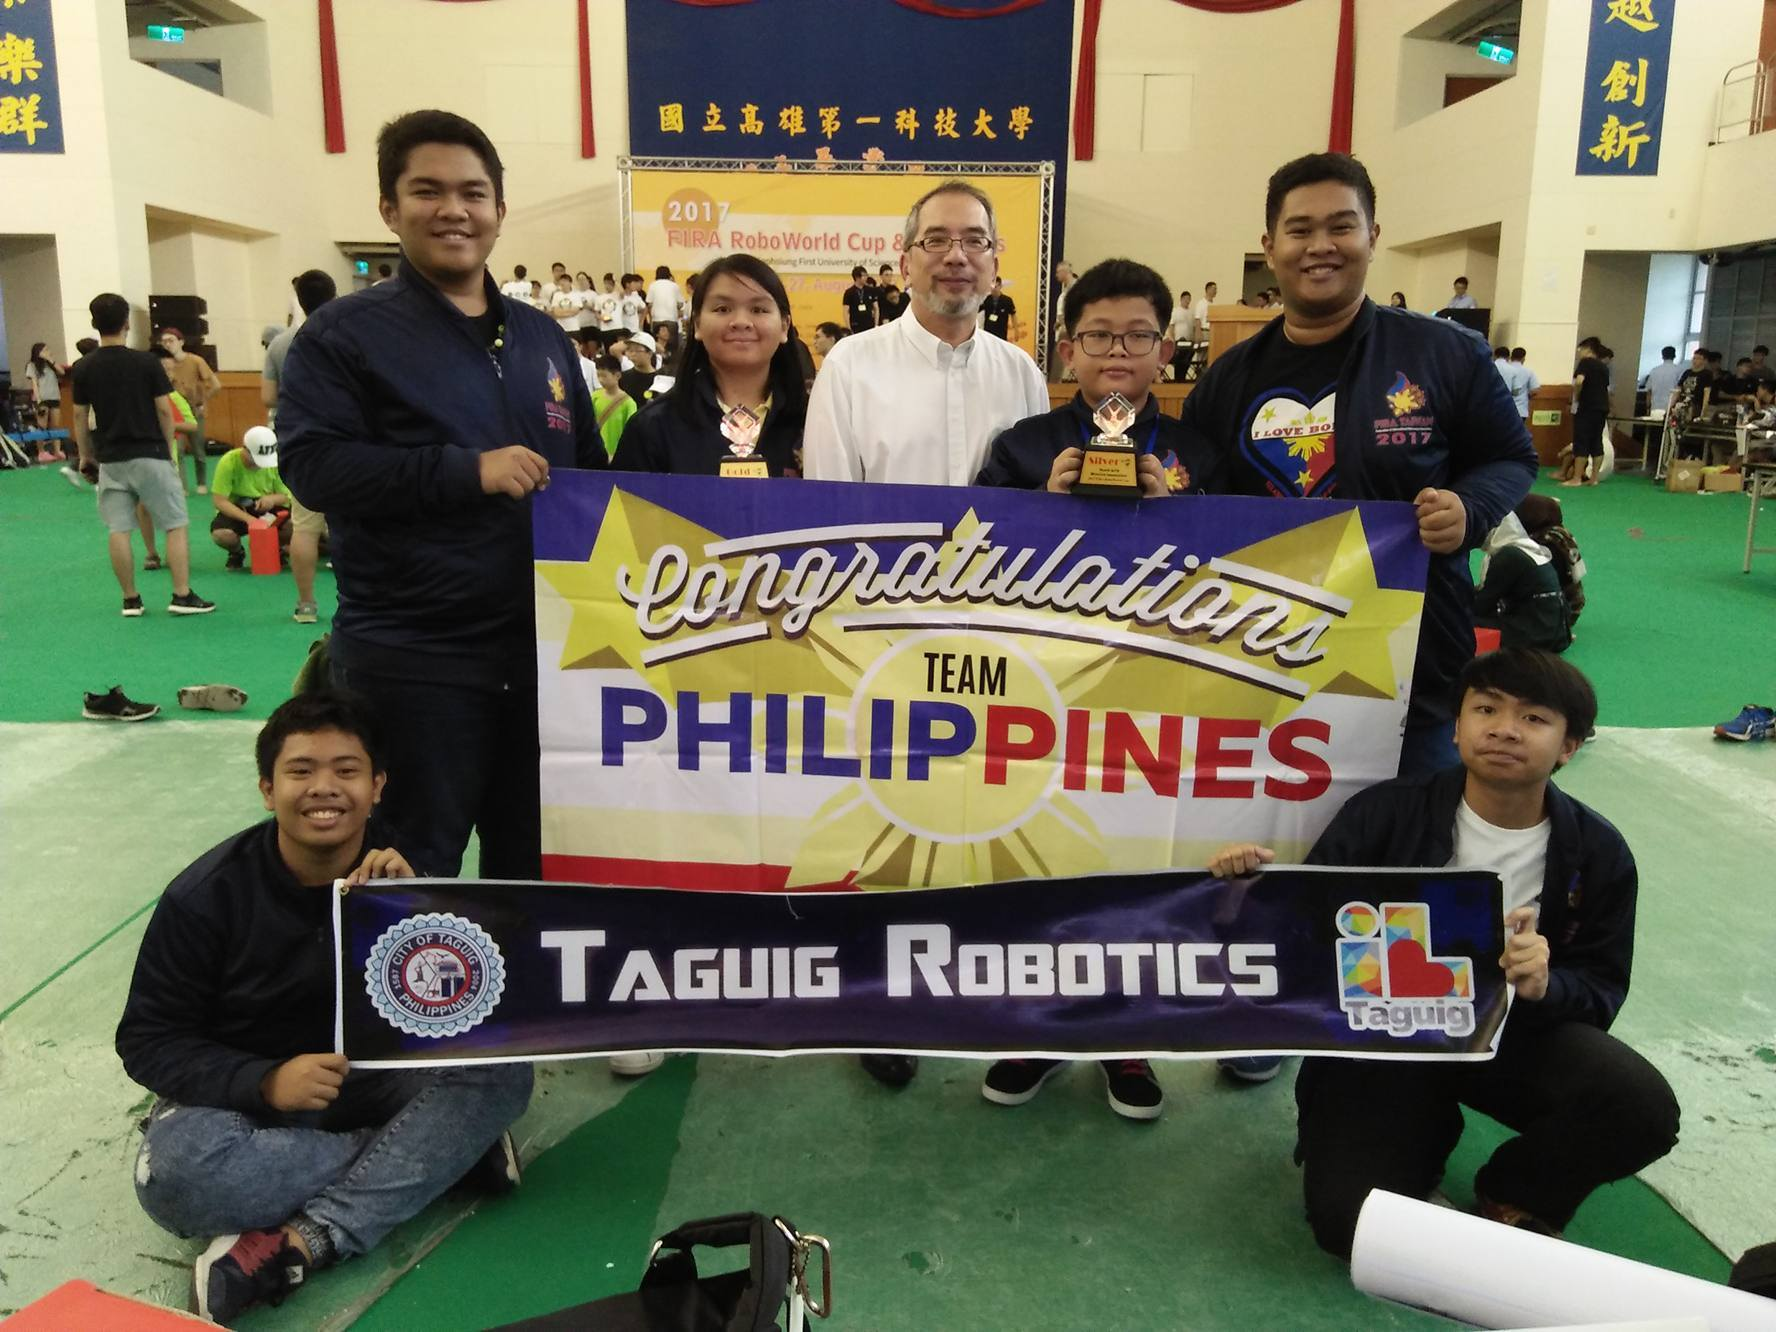 Taguig students bag trophies from int'l robotics competition